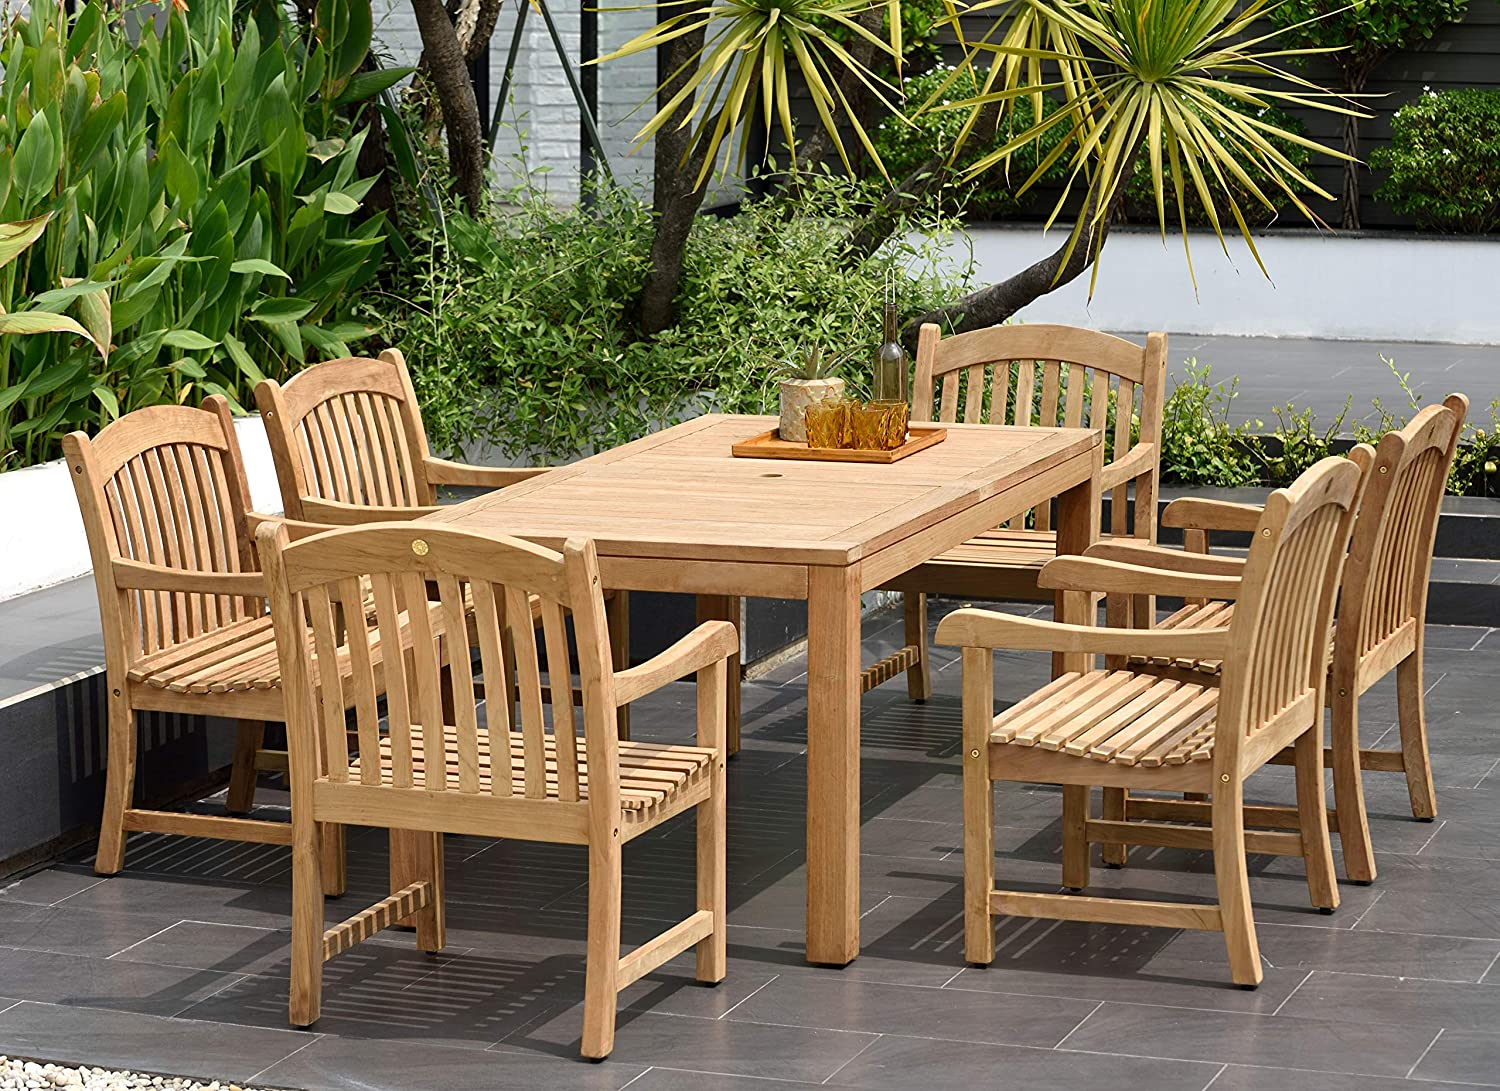 Amazonia Pennsylvania 9 Piece Outdoor Rectangular Dining Table Set    Certified Teak   Ideal for Patio and Indoors, Light Brown